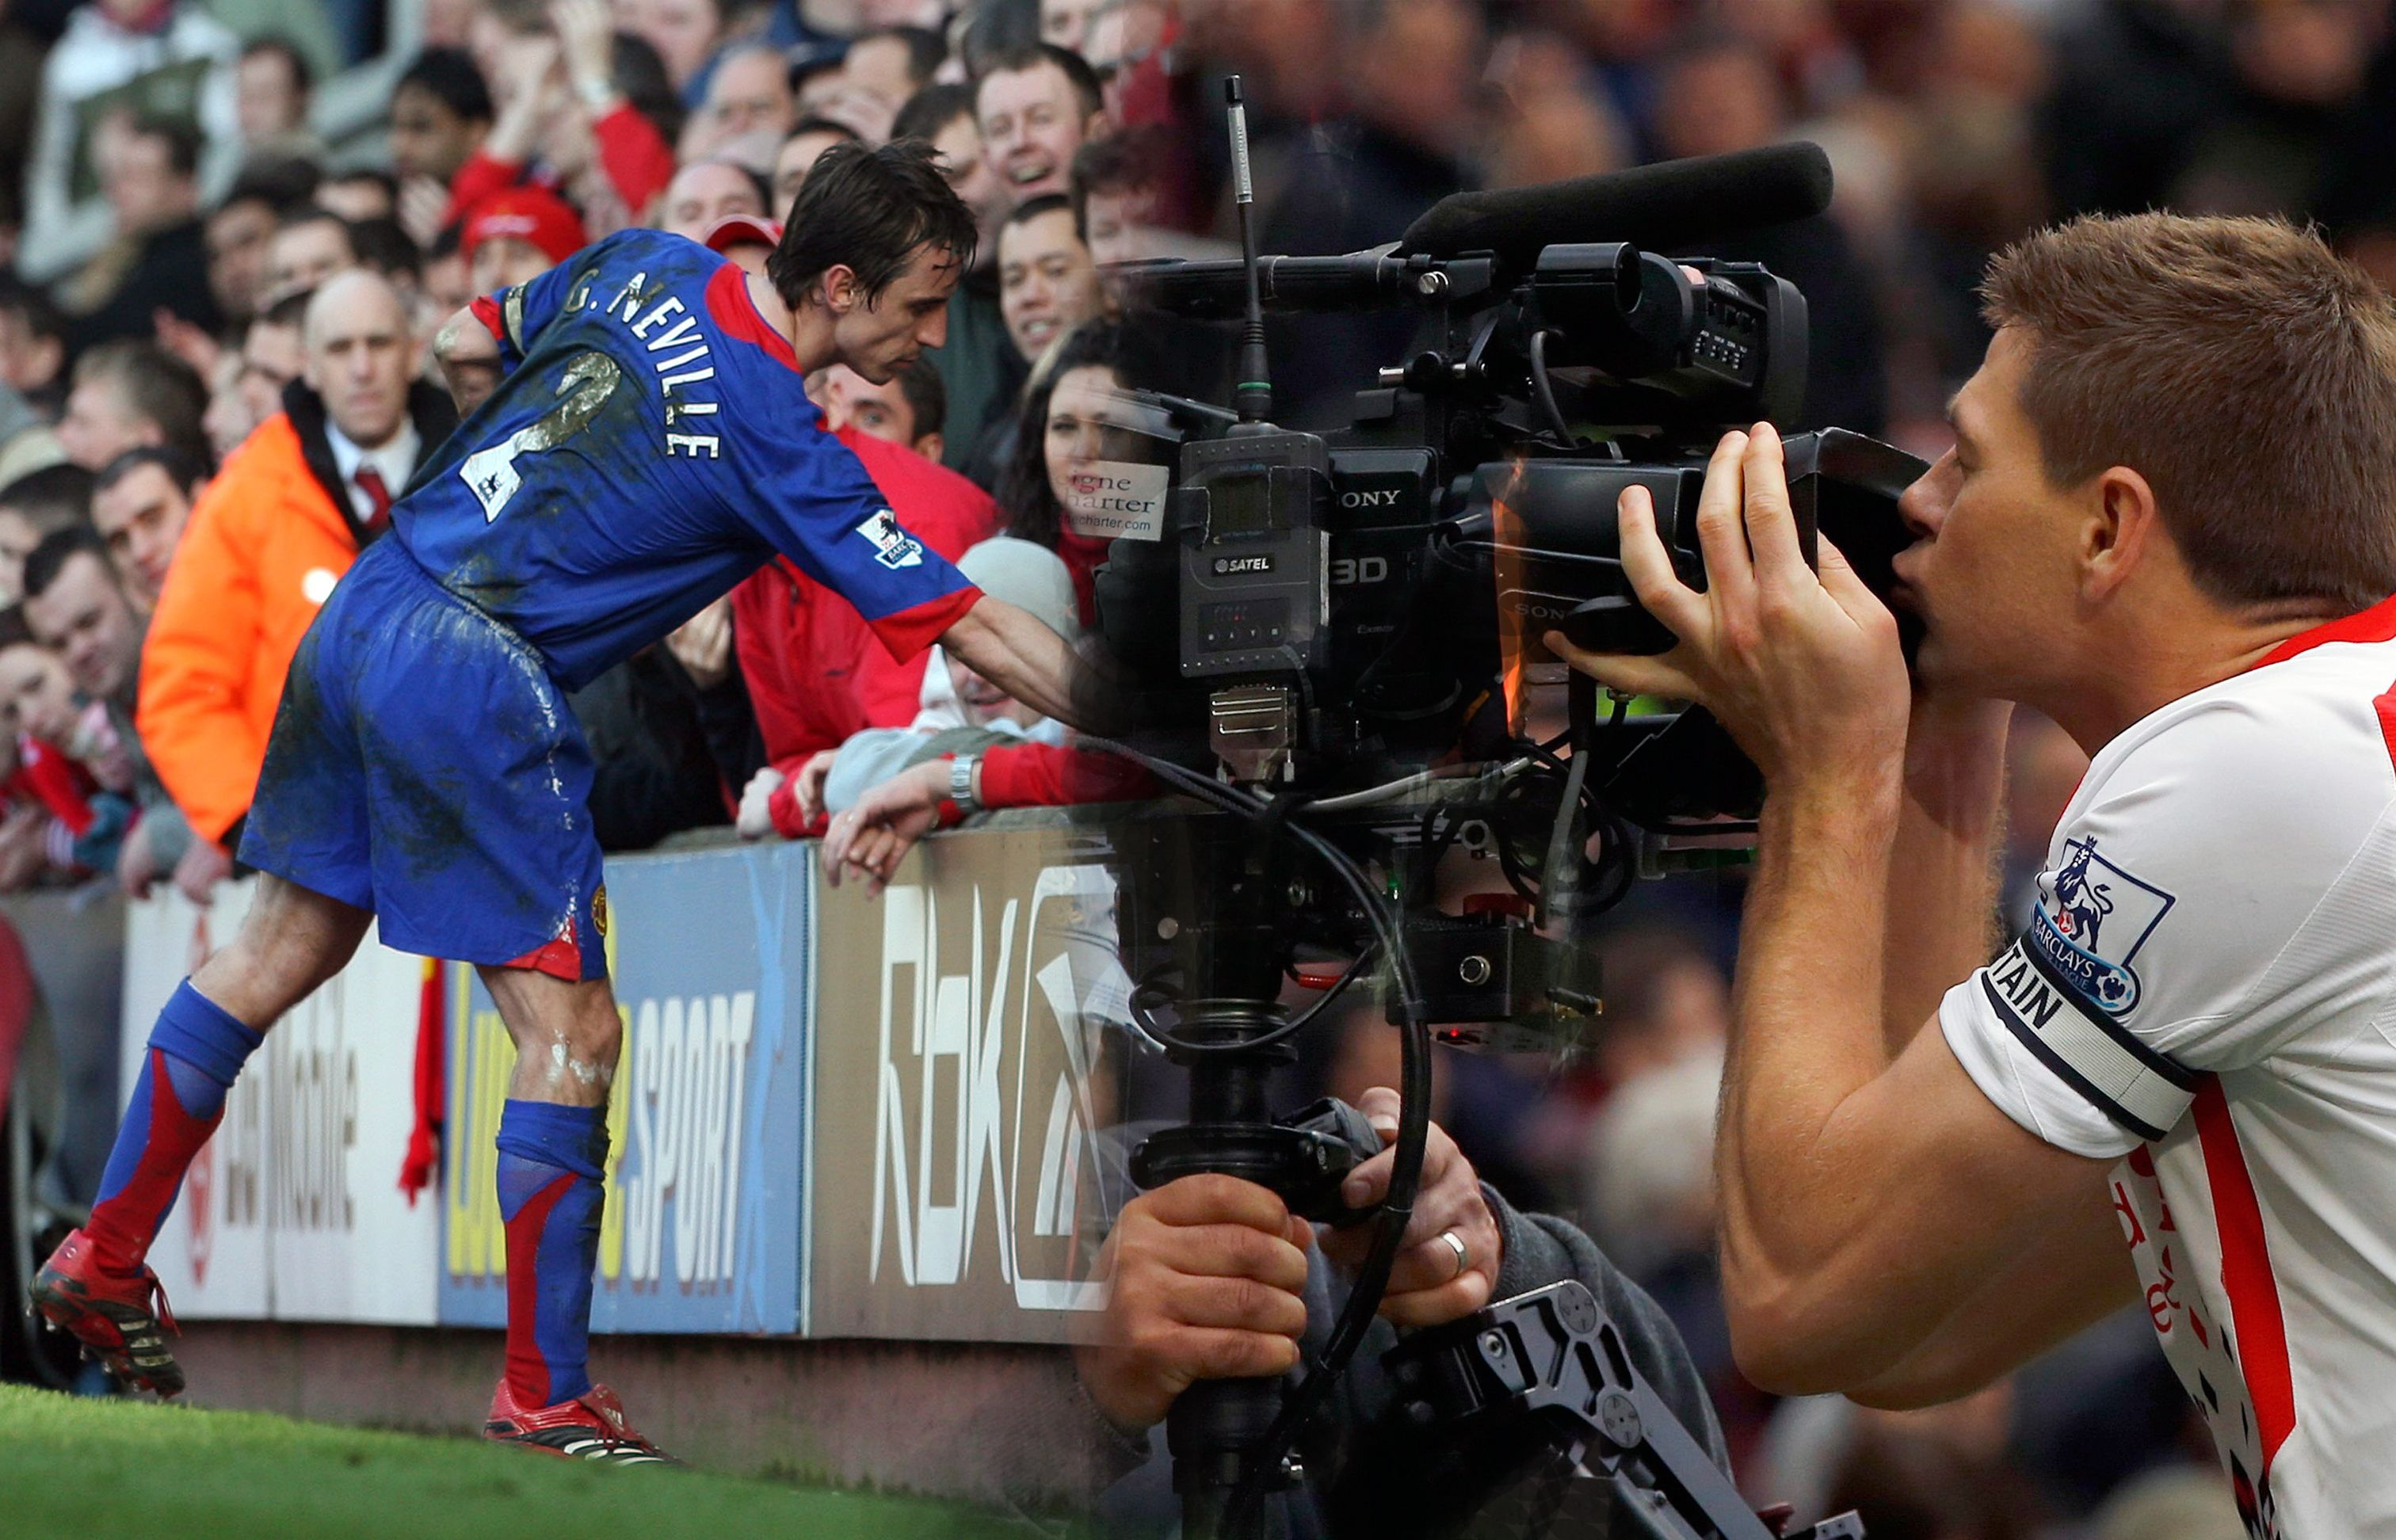 Liverpool Vs Man United See The Six Best Moments In This Historic Rivalry Mufc Lfc Soccer Football Man United Football La Liga